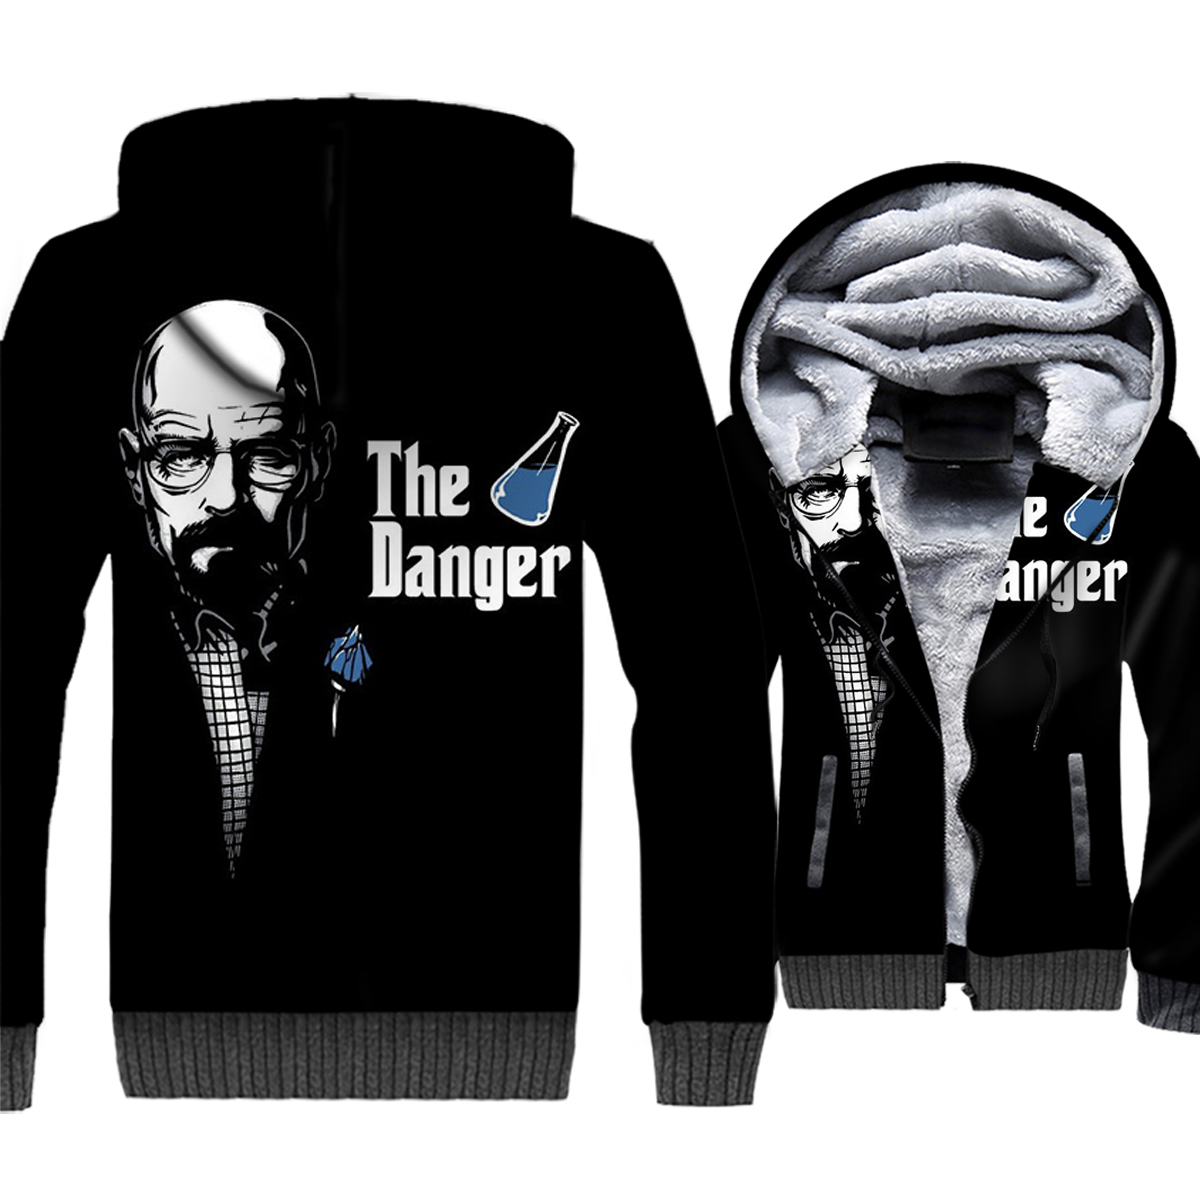 Breaking Bad Jacket Heisenberg Hoodie Men The Danger Sweatshirt Winter Thick Fleece Warm Zipper Coat Black 3D Print Streetwear in Jackets from Men 39 s Clothing